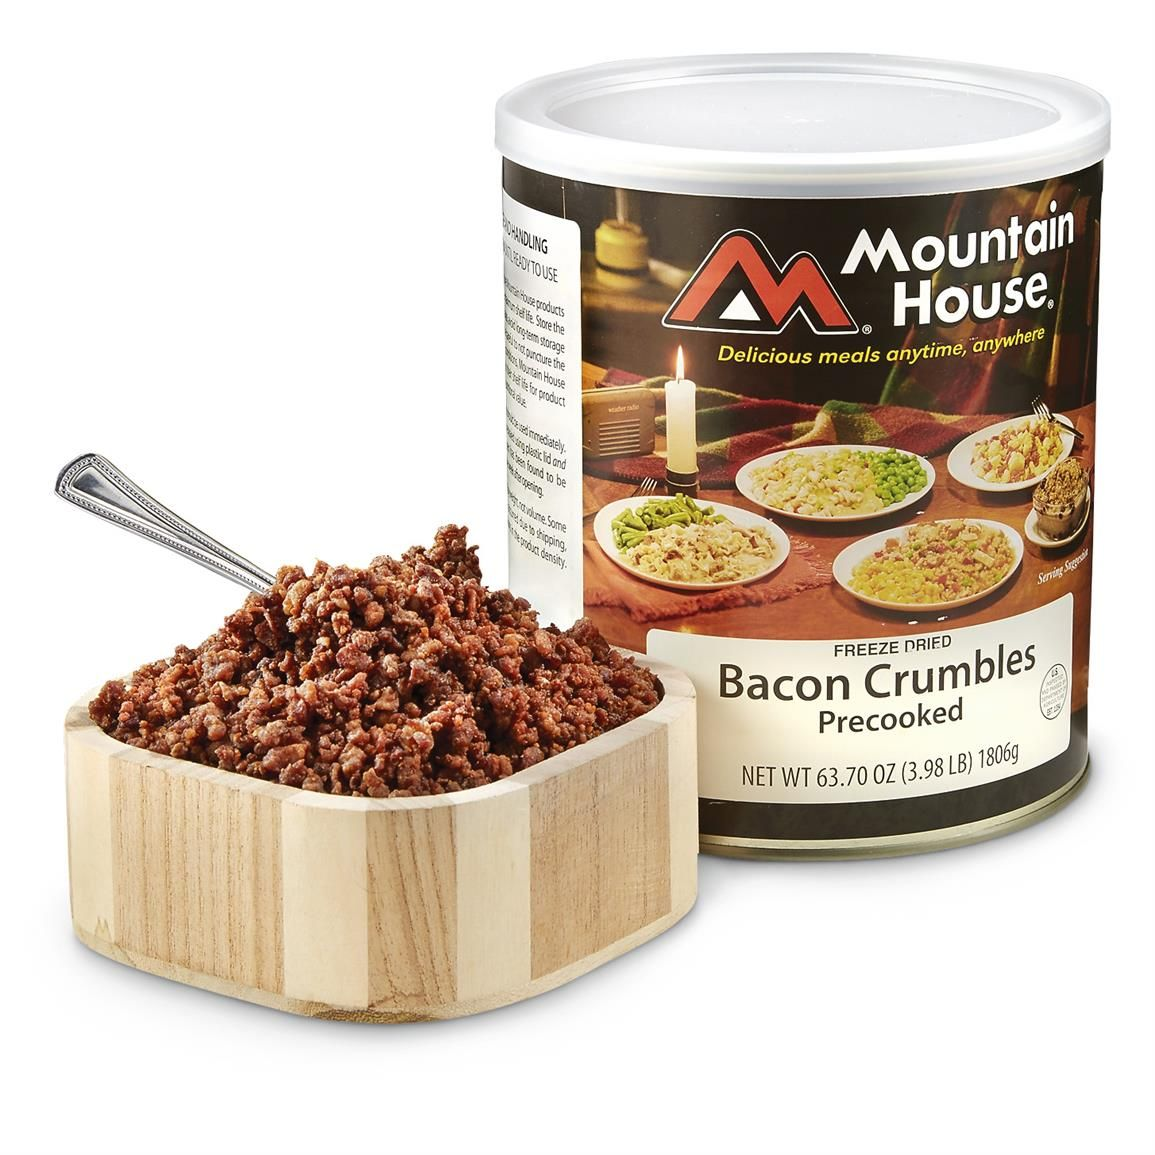 Mountain House Freezedried Bacon Crumbles (With images